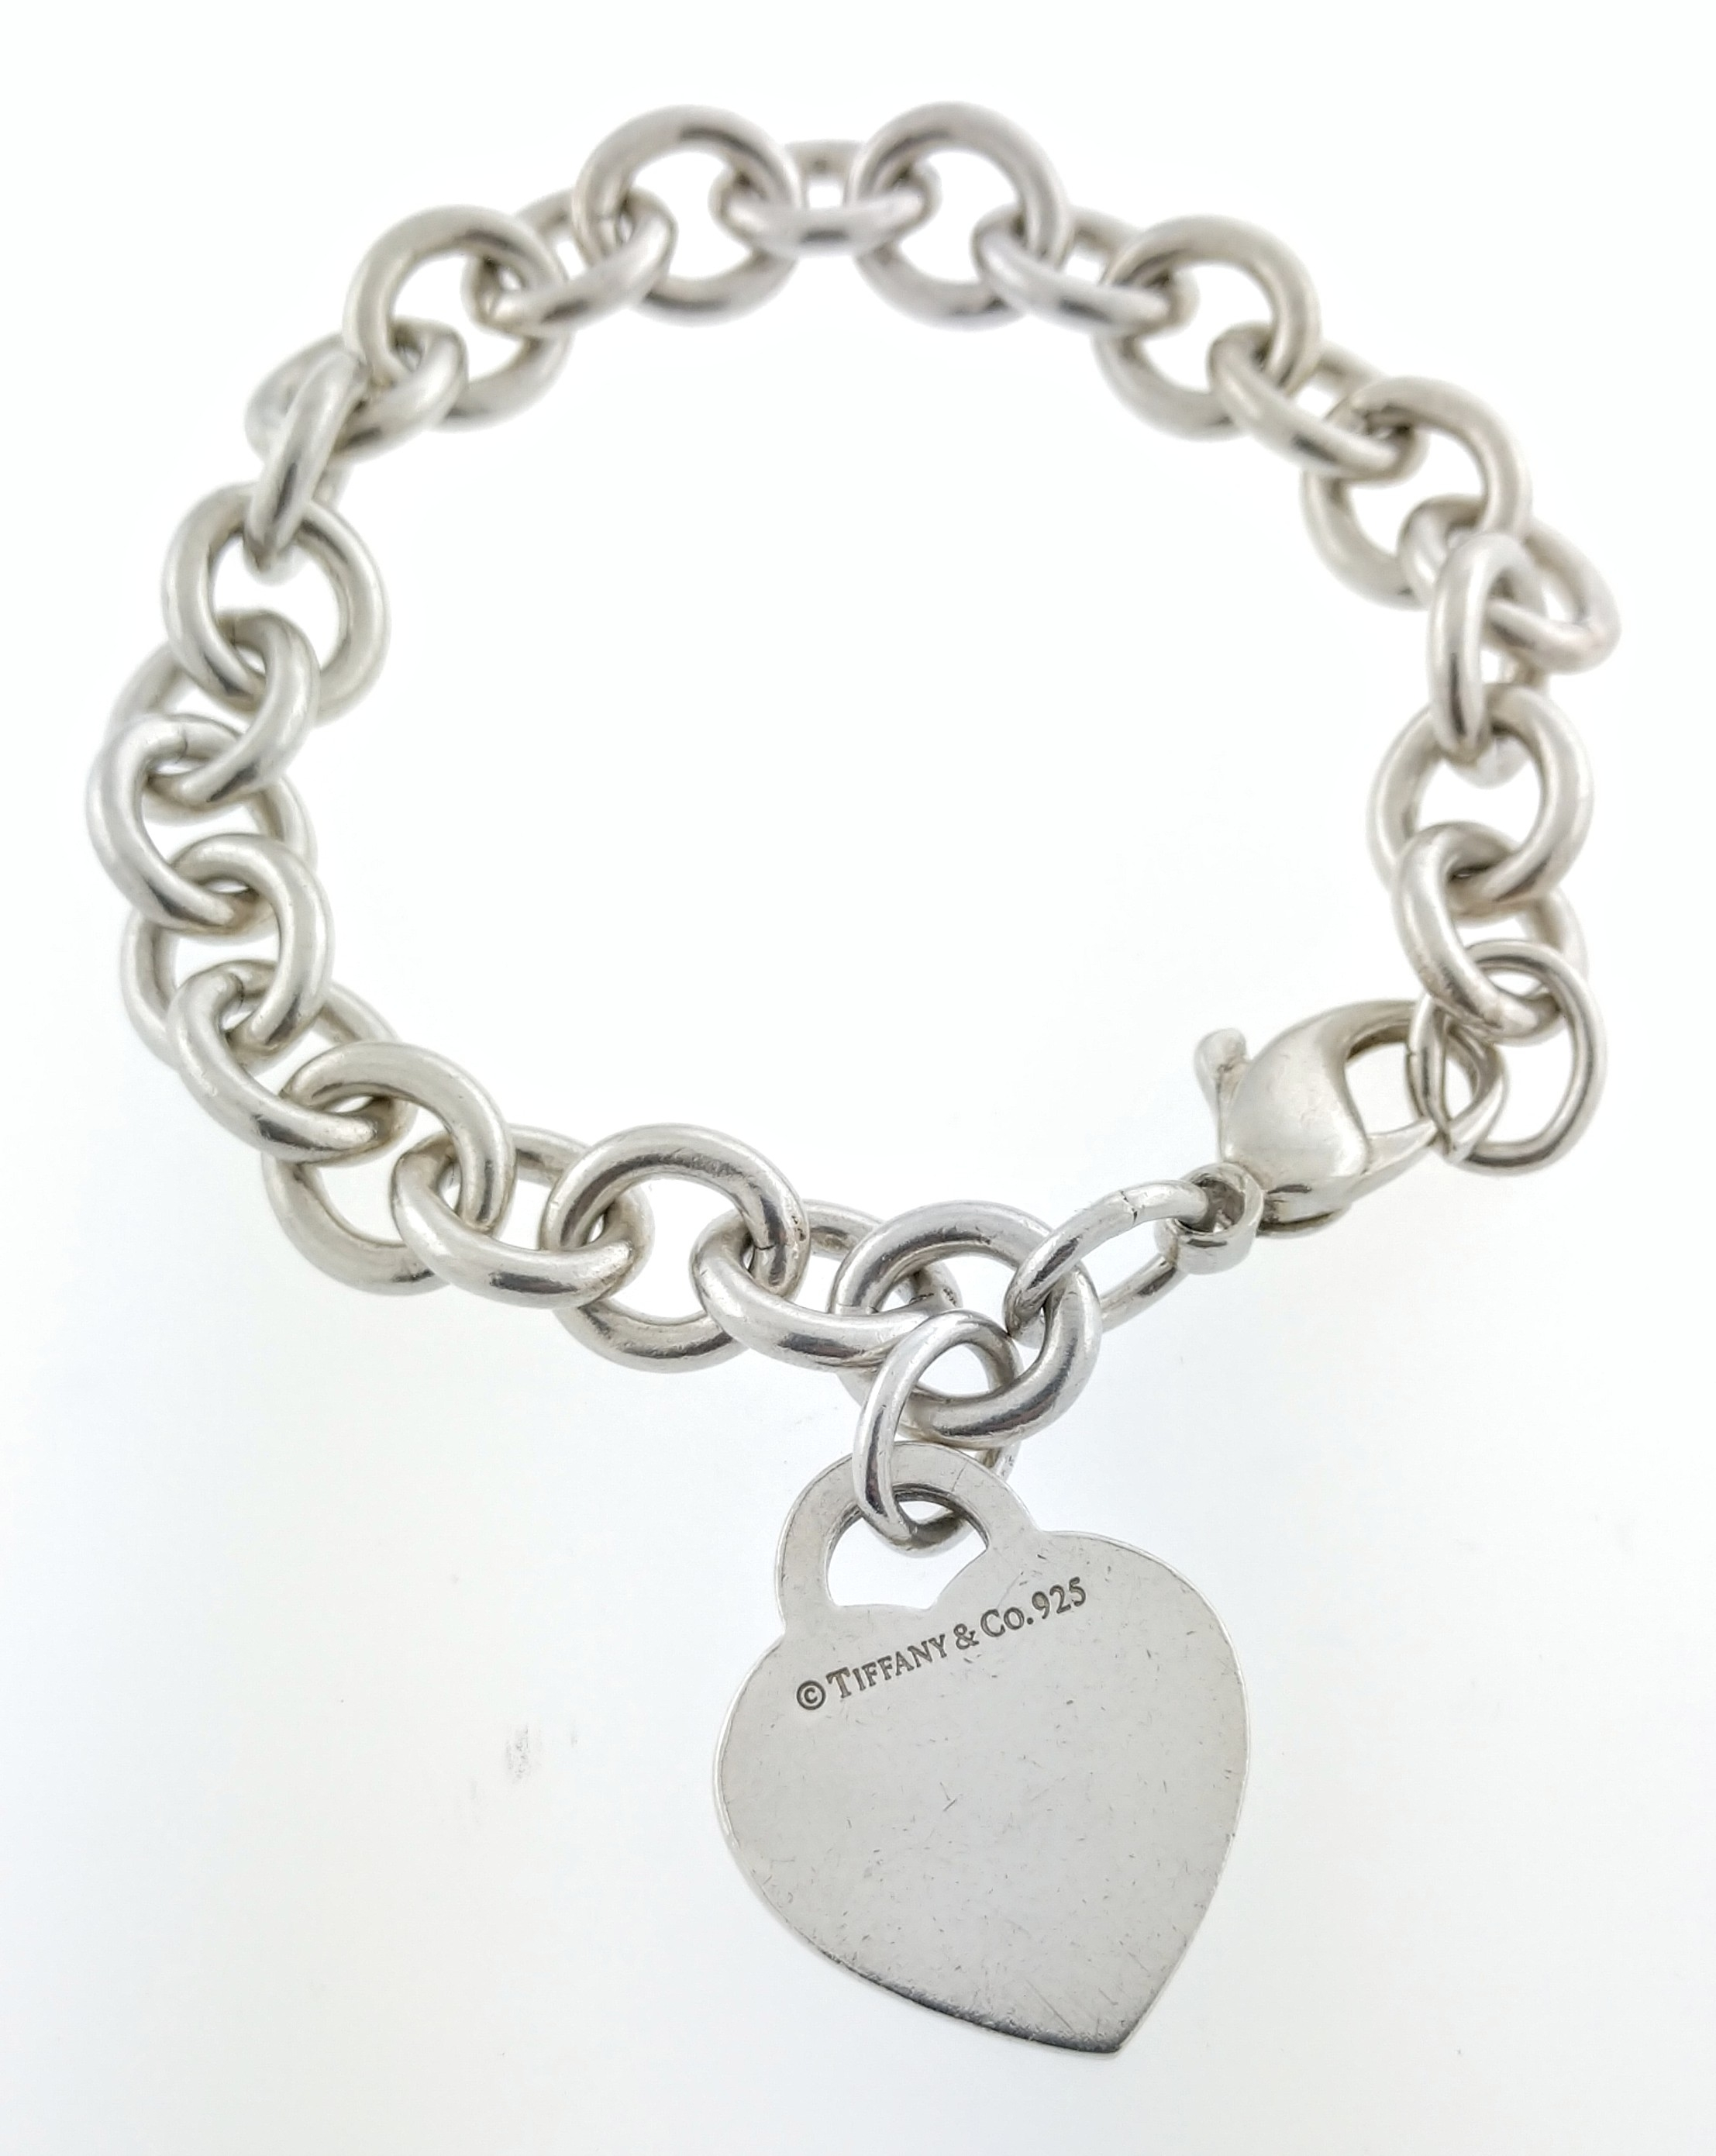 30983318c Details about Please Return To Tiffany & Co .925 Sterling Silver Heart Tag  Charm Bracelet 7.5